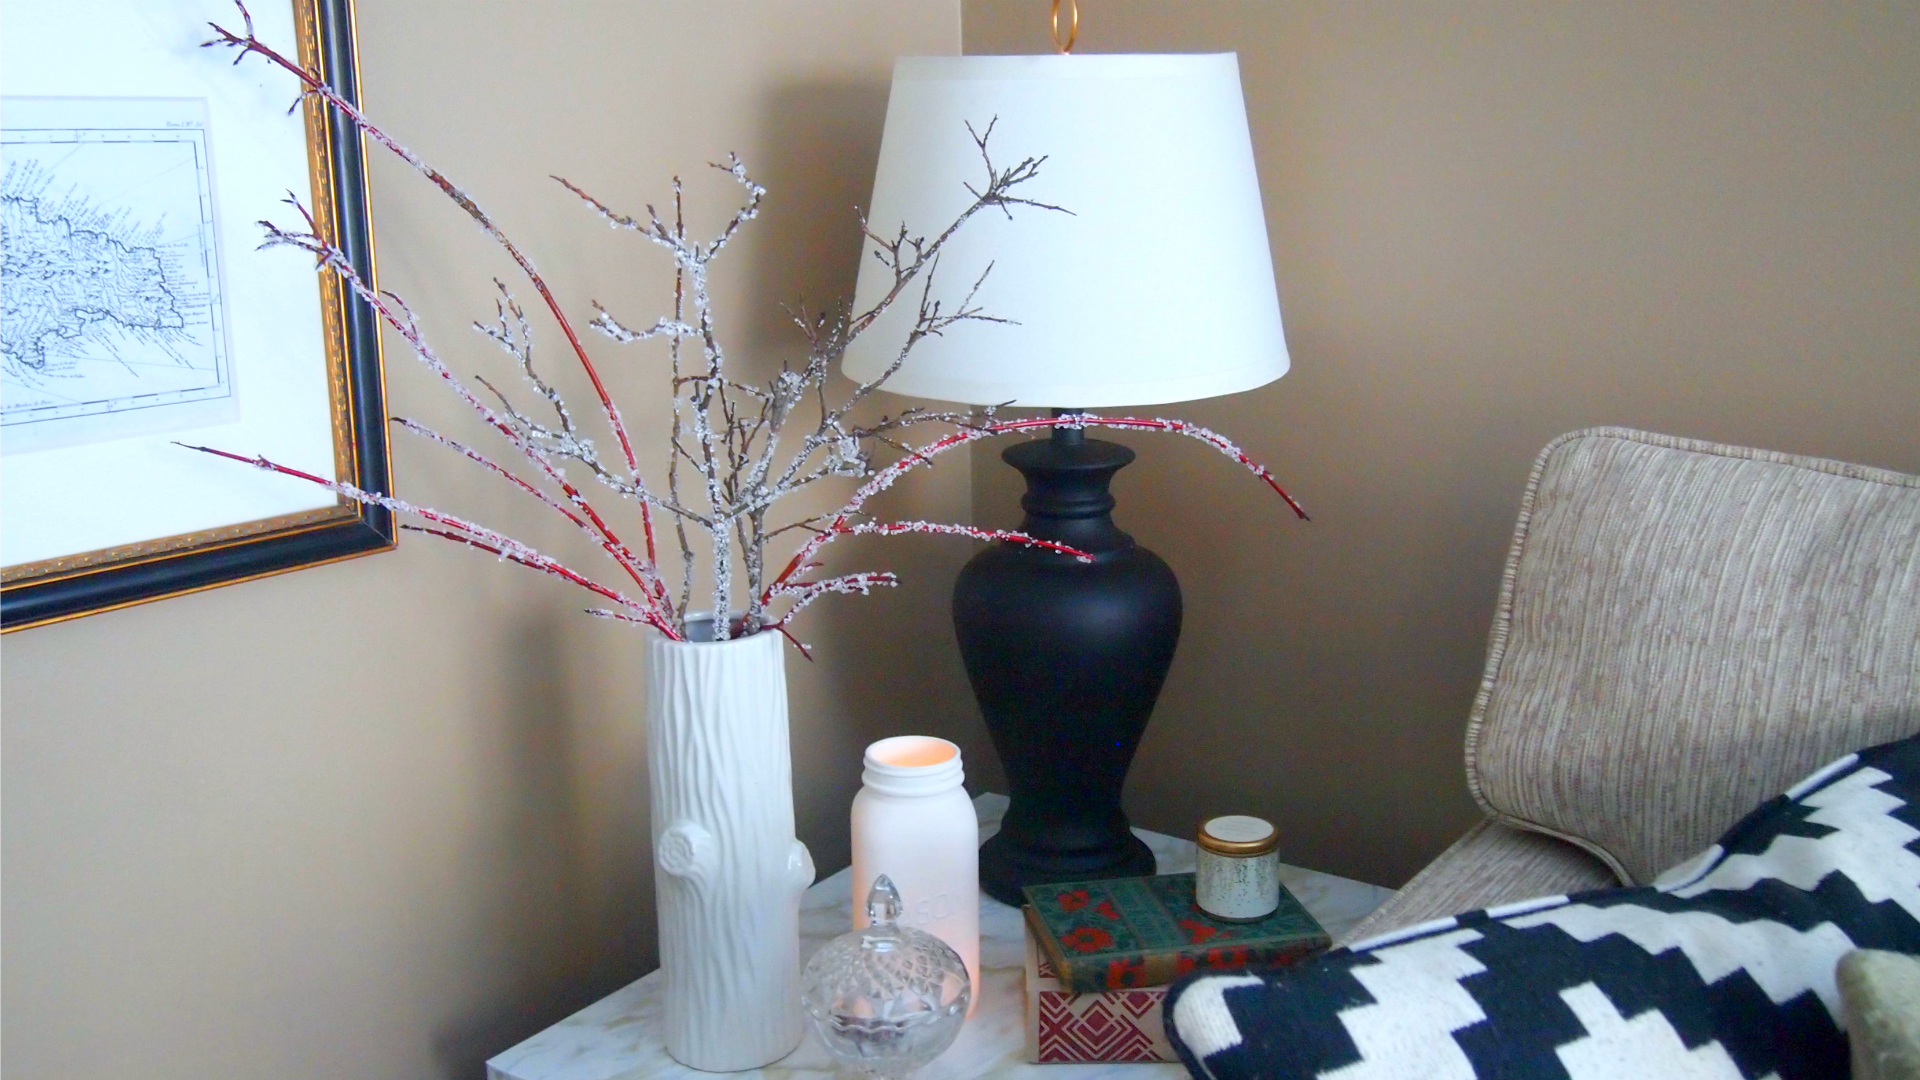 Icy-looking Branches For Winter Decor That Won't Break The